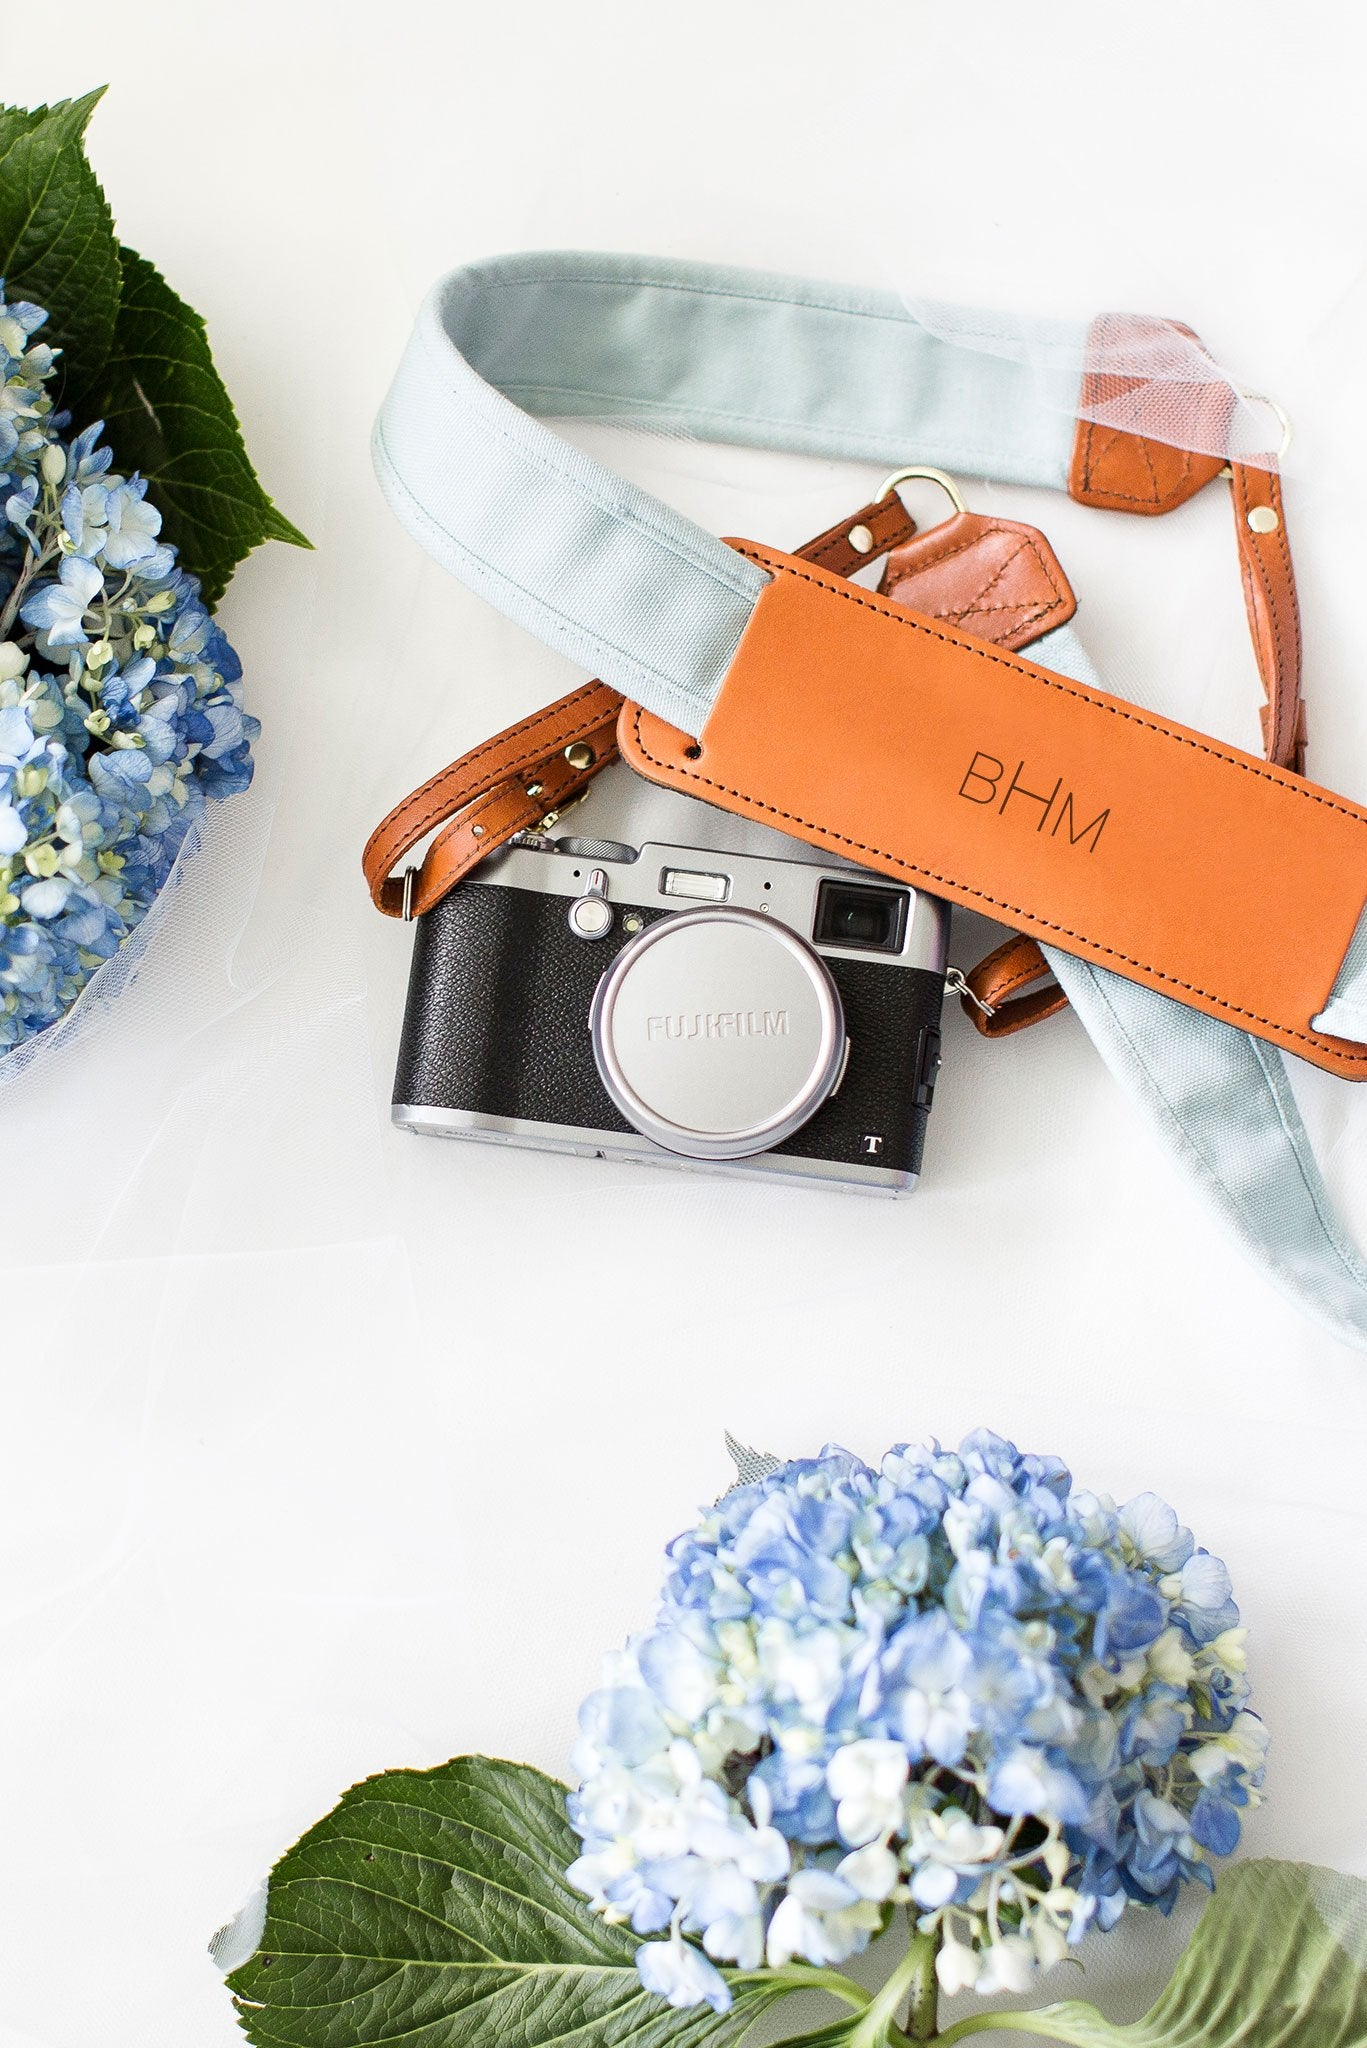 FOTO | The Sky Fotostrap for Her - a light blue canvas and genuine leather camera strap that can be personalized with a monogram or personal graphic, making it the perfect personalized gift!